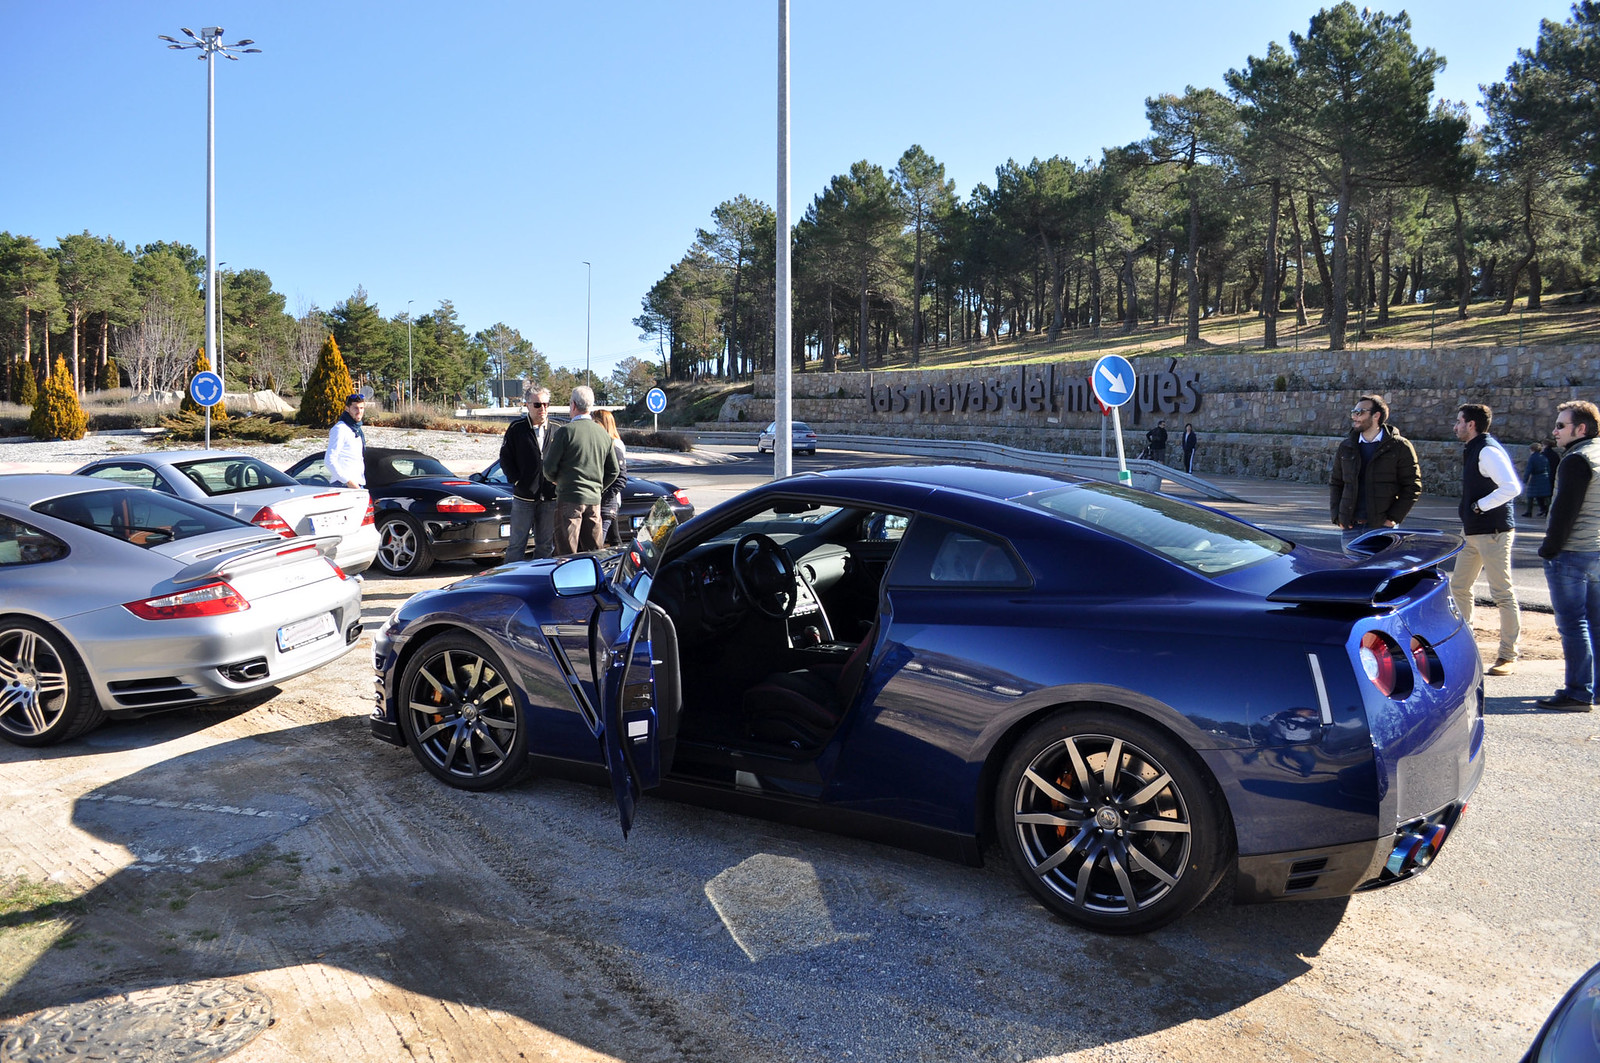 Brunch and Cars Madrid - Round 2